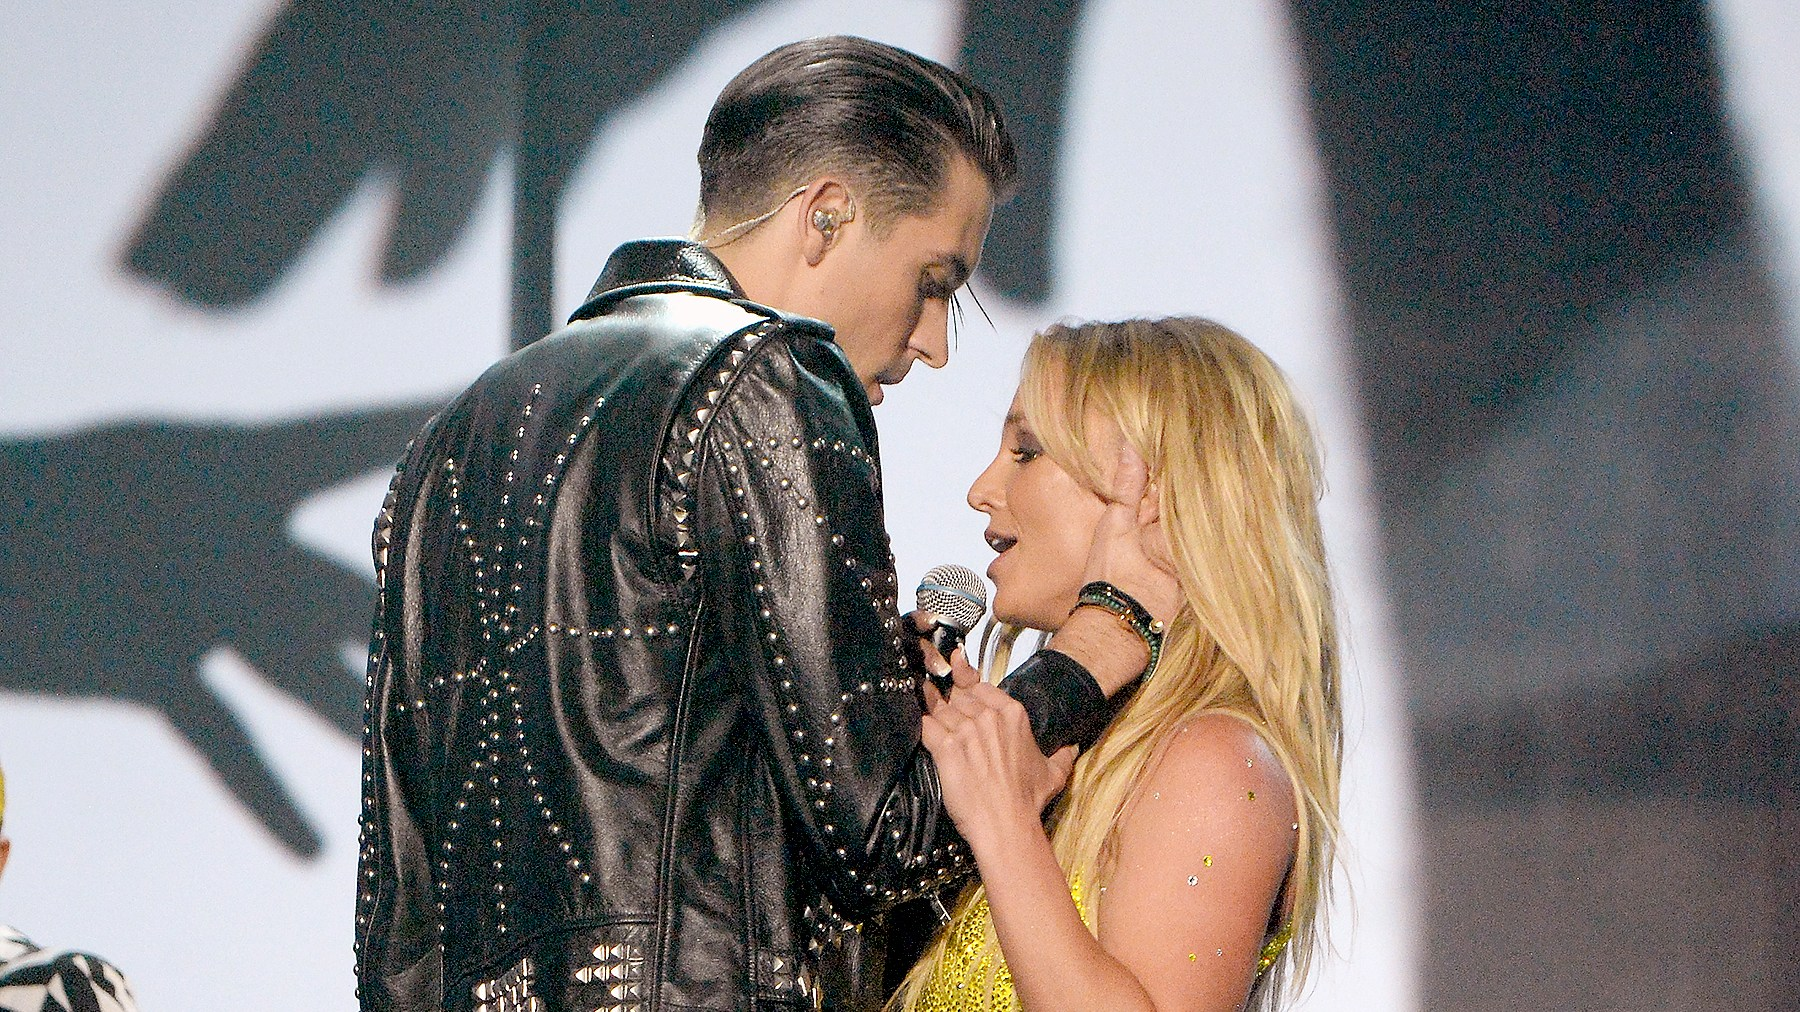 Britney Spears and G-Eazy perform onstage during the 2016 MTV Music Video Awards.